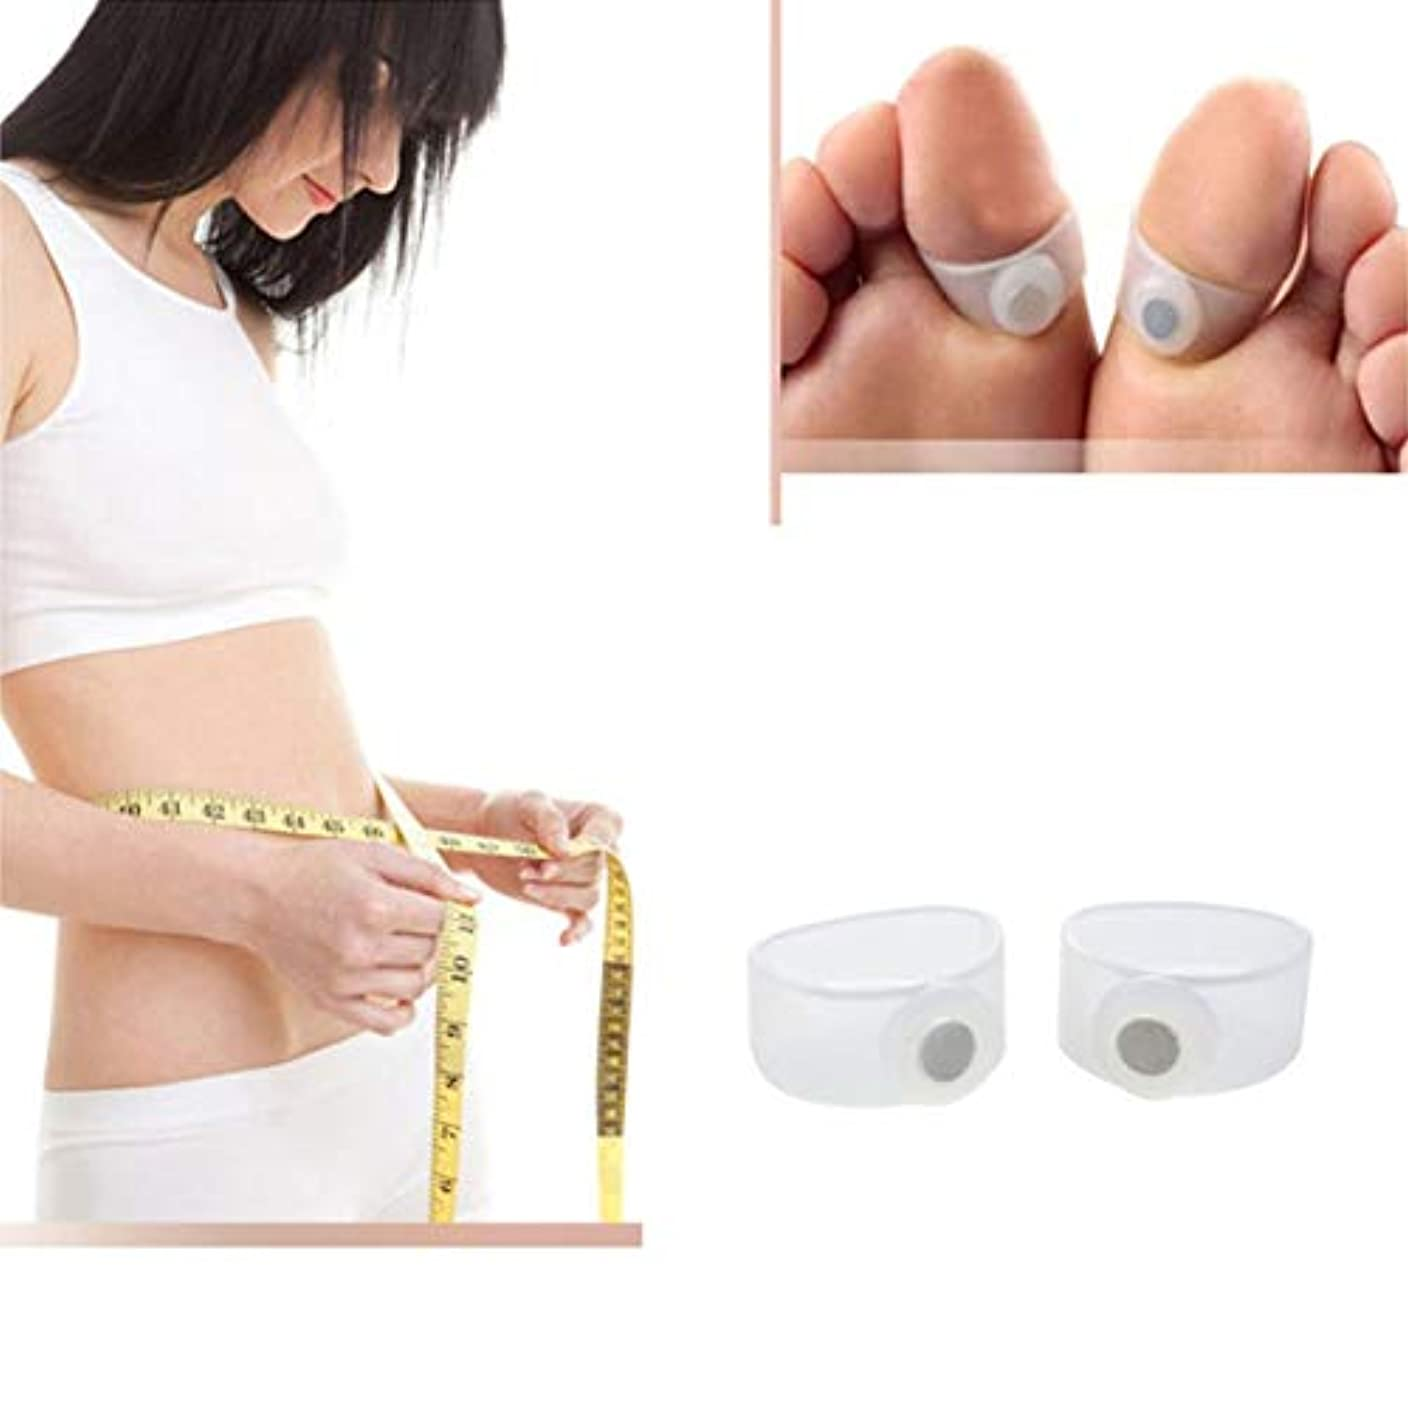 2PCS Slimming Silicon Magnetic Foot Massager Massge Relax Toe Ring for Weight Loss Health Care Tools Beauty Products